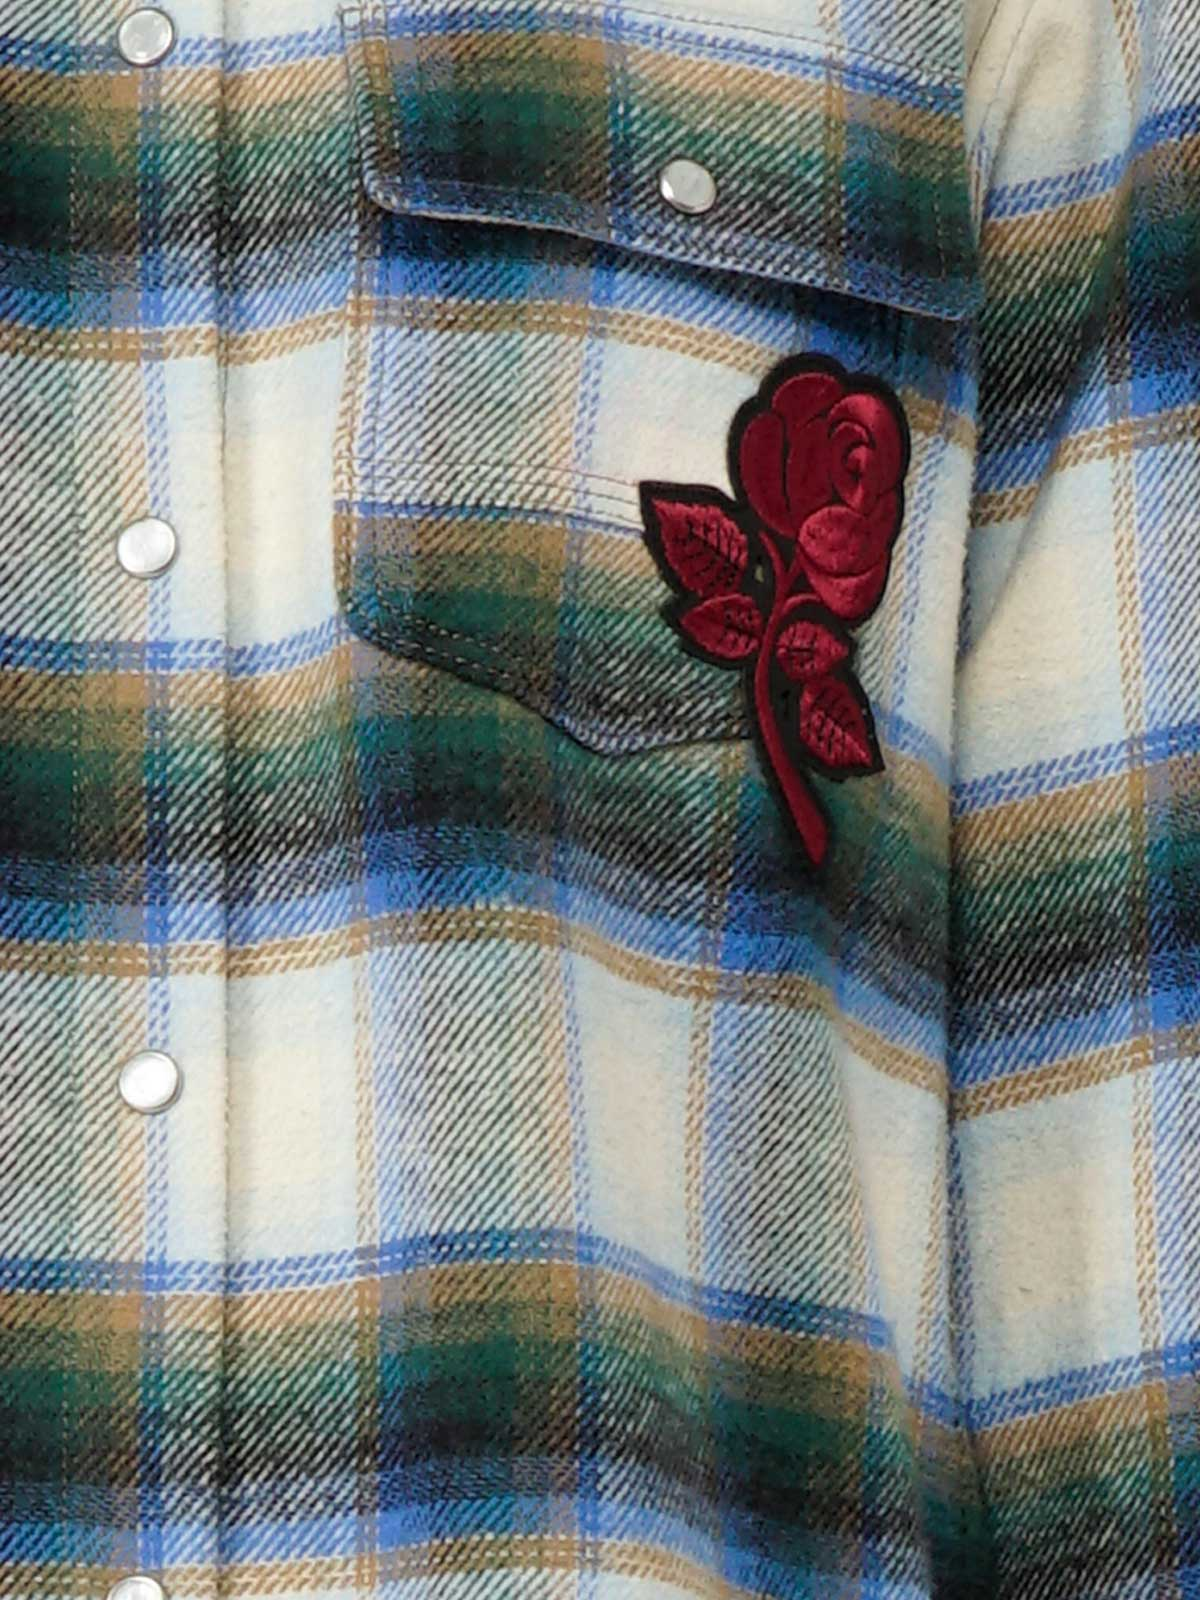 Golden Goose - Allison shirt in checked flannel with rose patch in